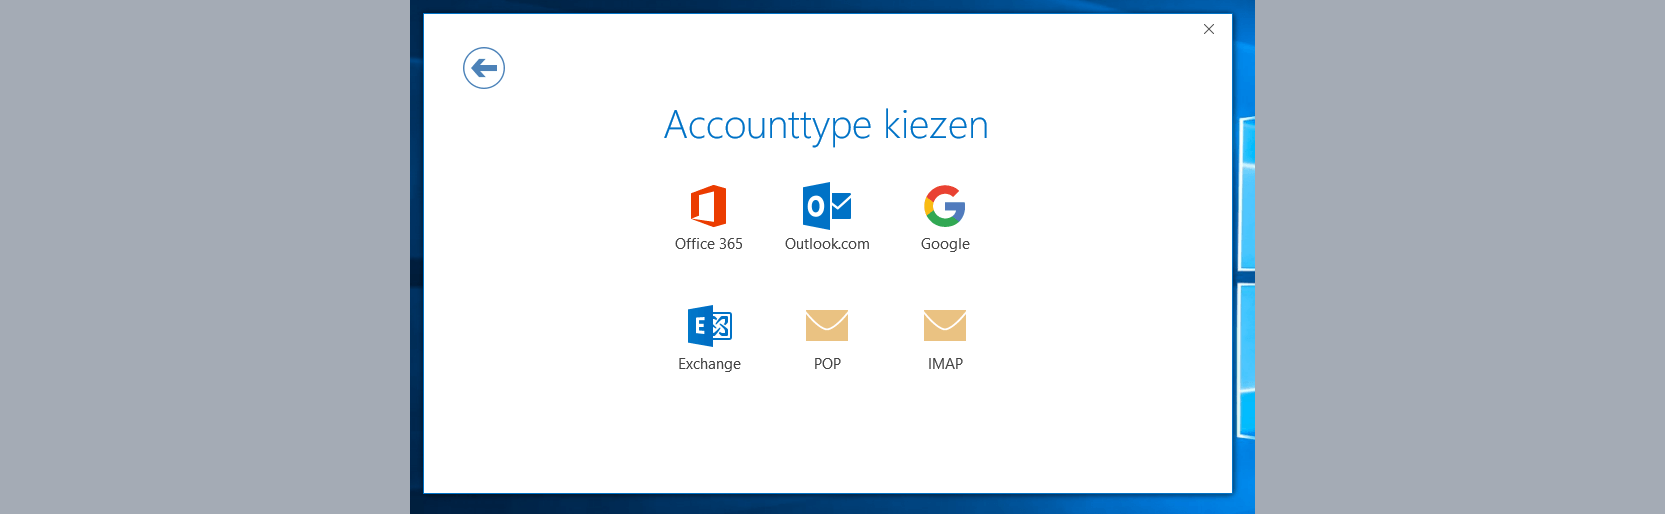 outlook 2016 accounttype kiezen